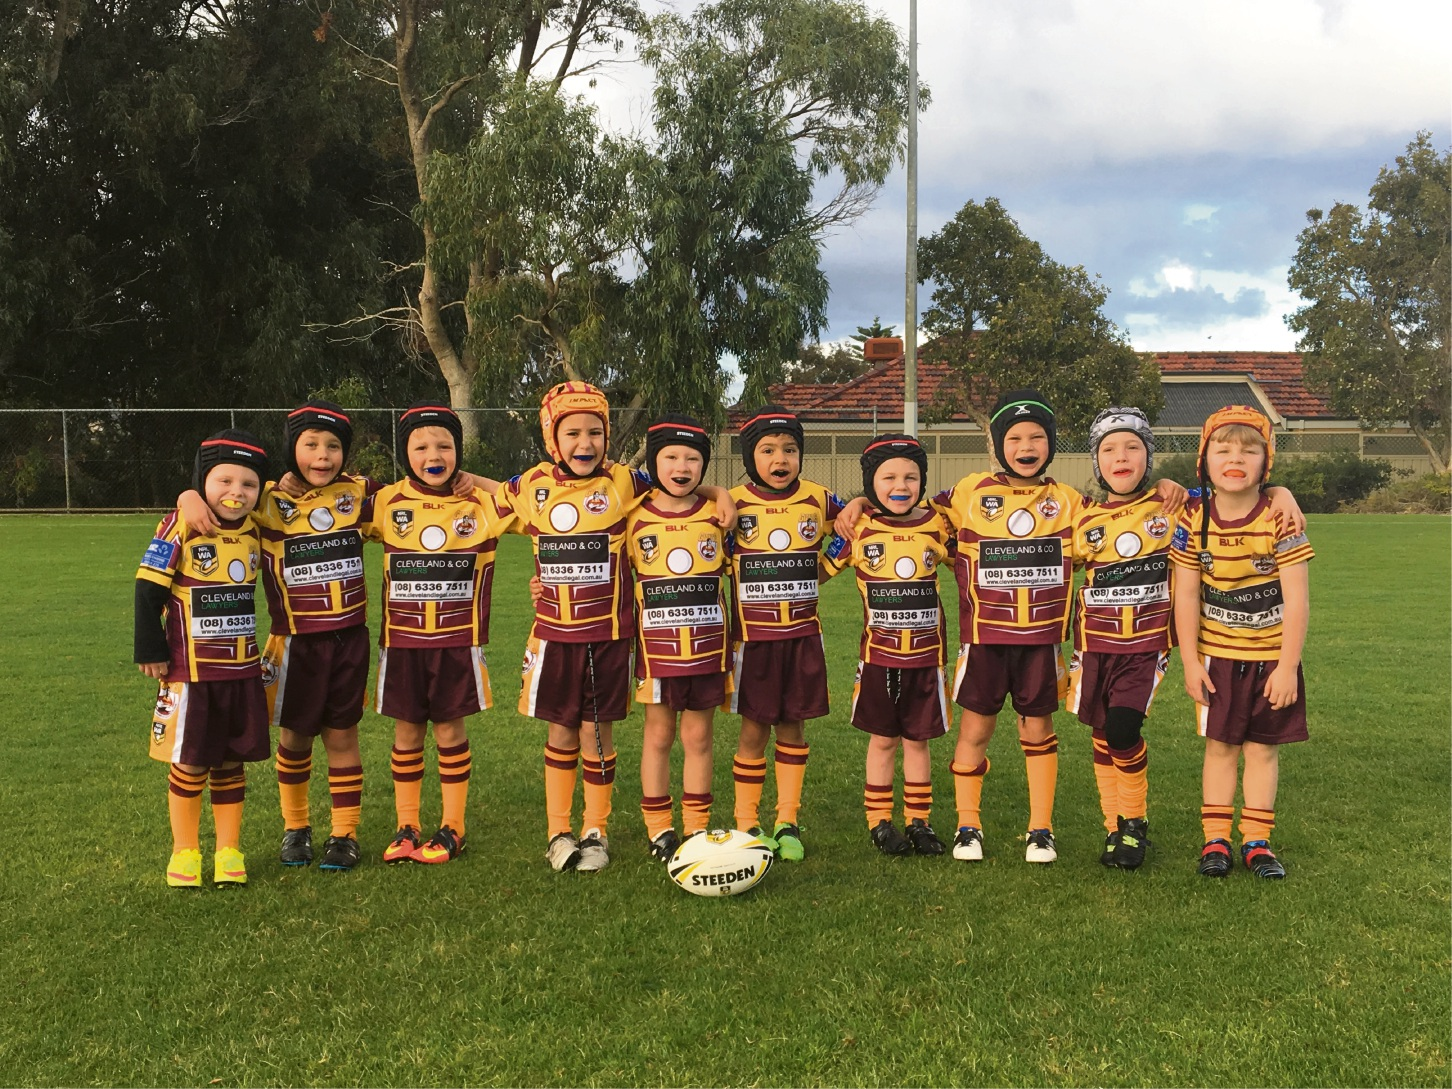 The Joondalup Giants juniors will have some added attractions at their home game on Sunday.